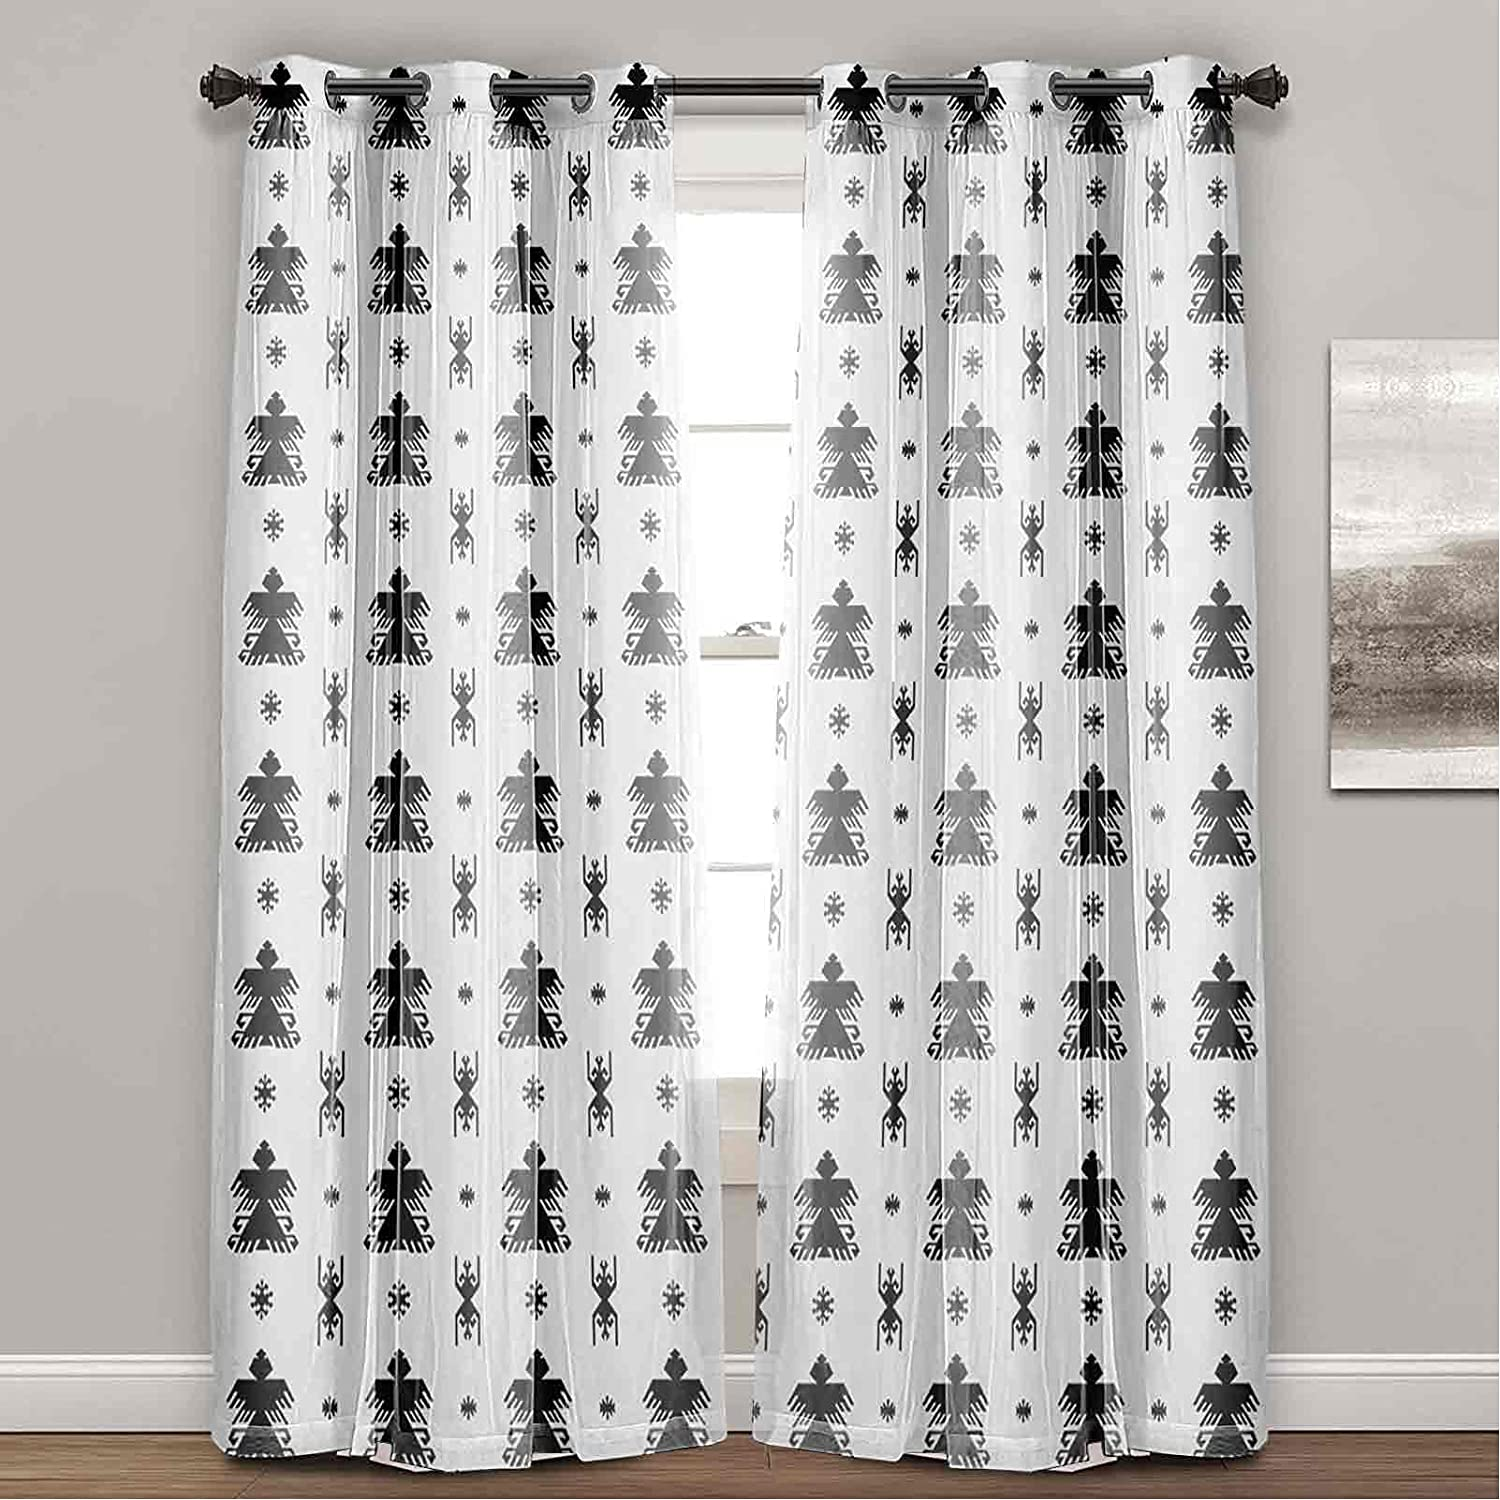 Thermal Insulated Blackout Curtains Graphic Ornamental Arrow Sales for sale Pa Animer and price revision